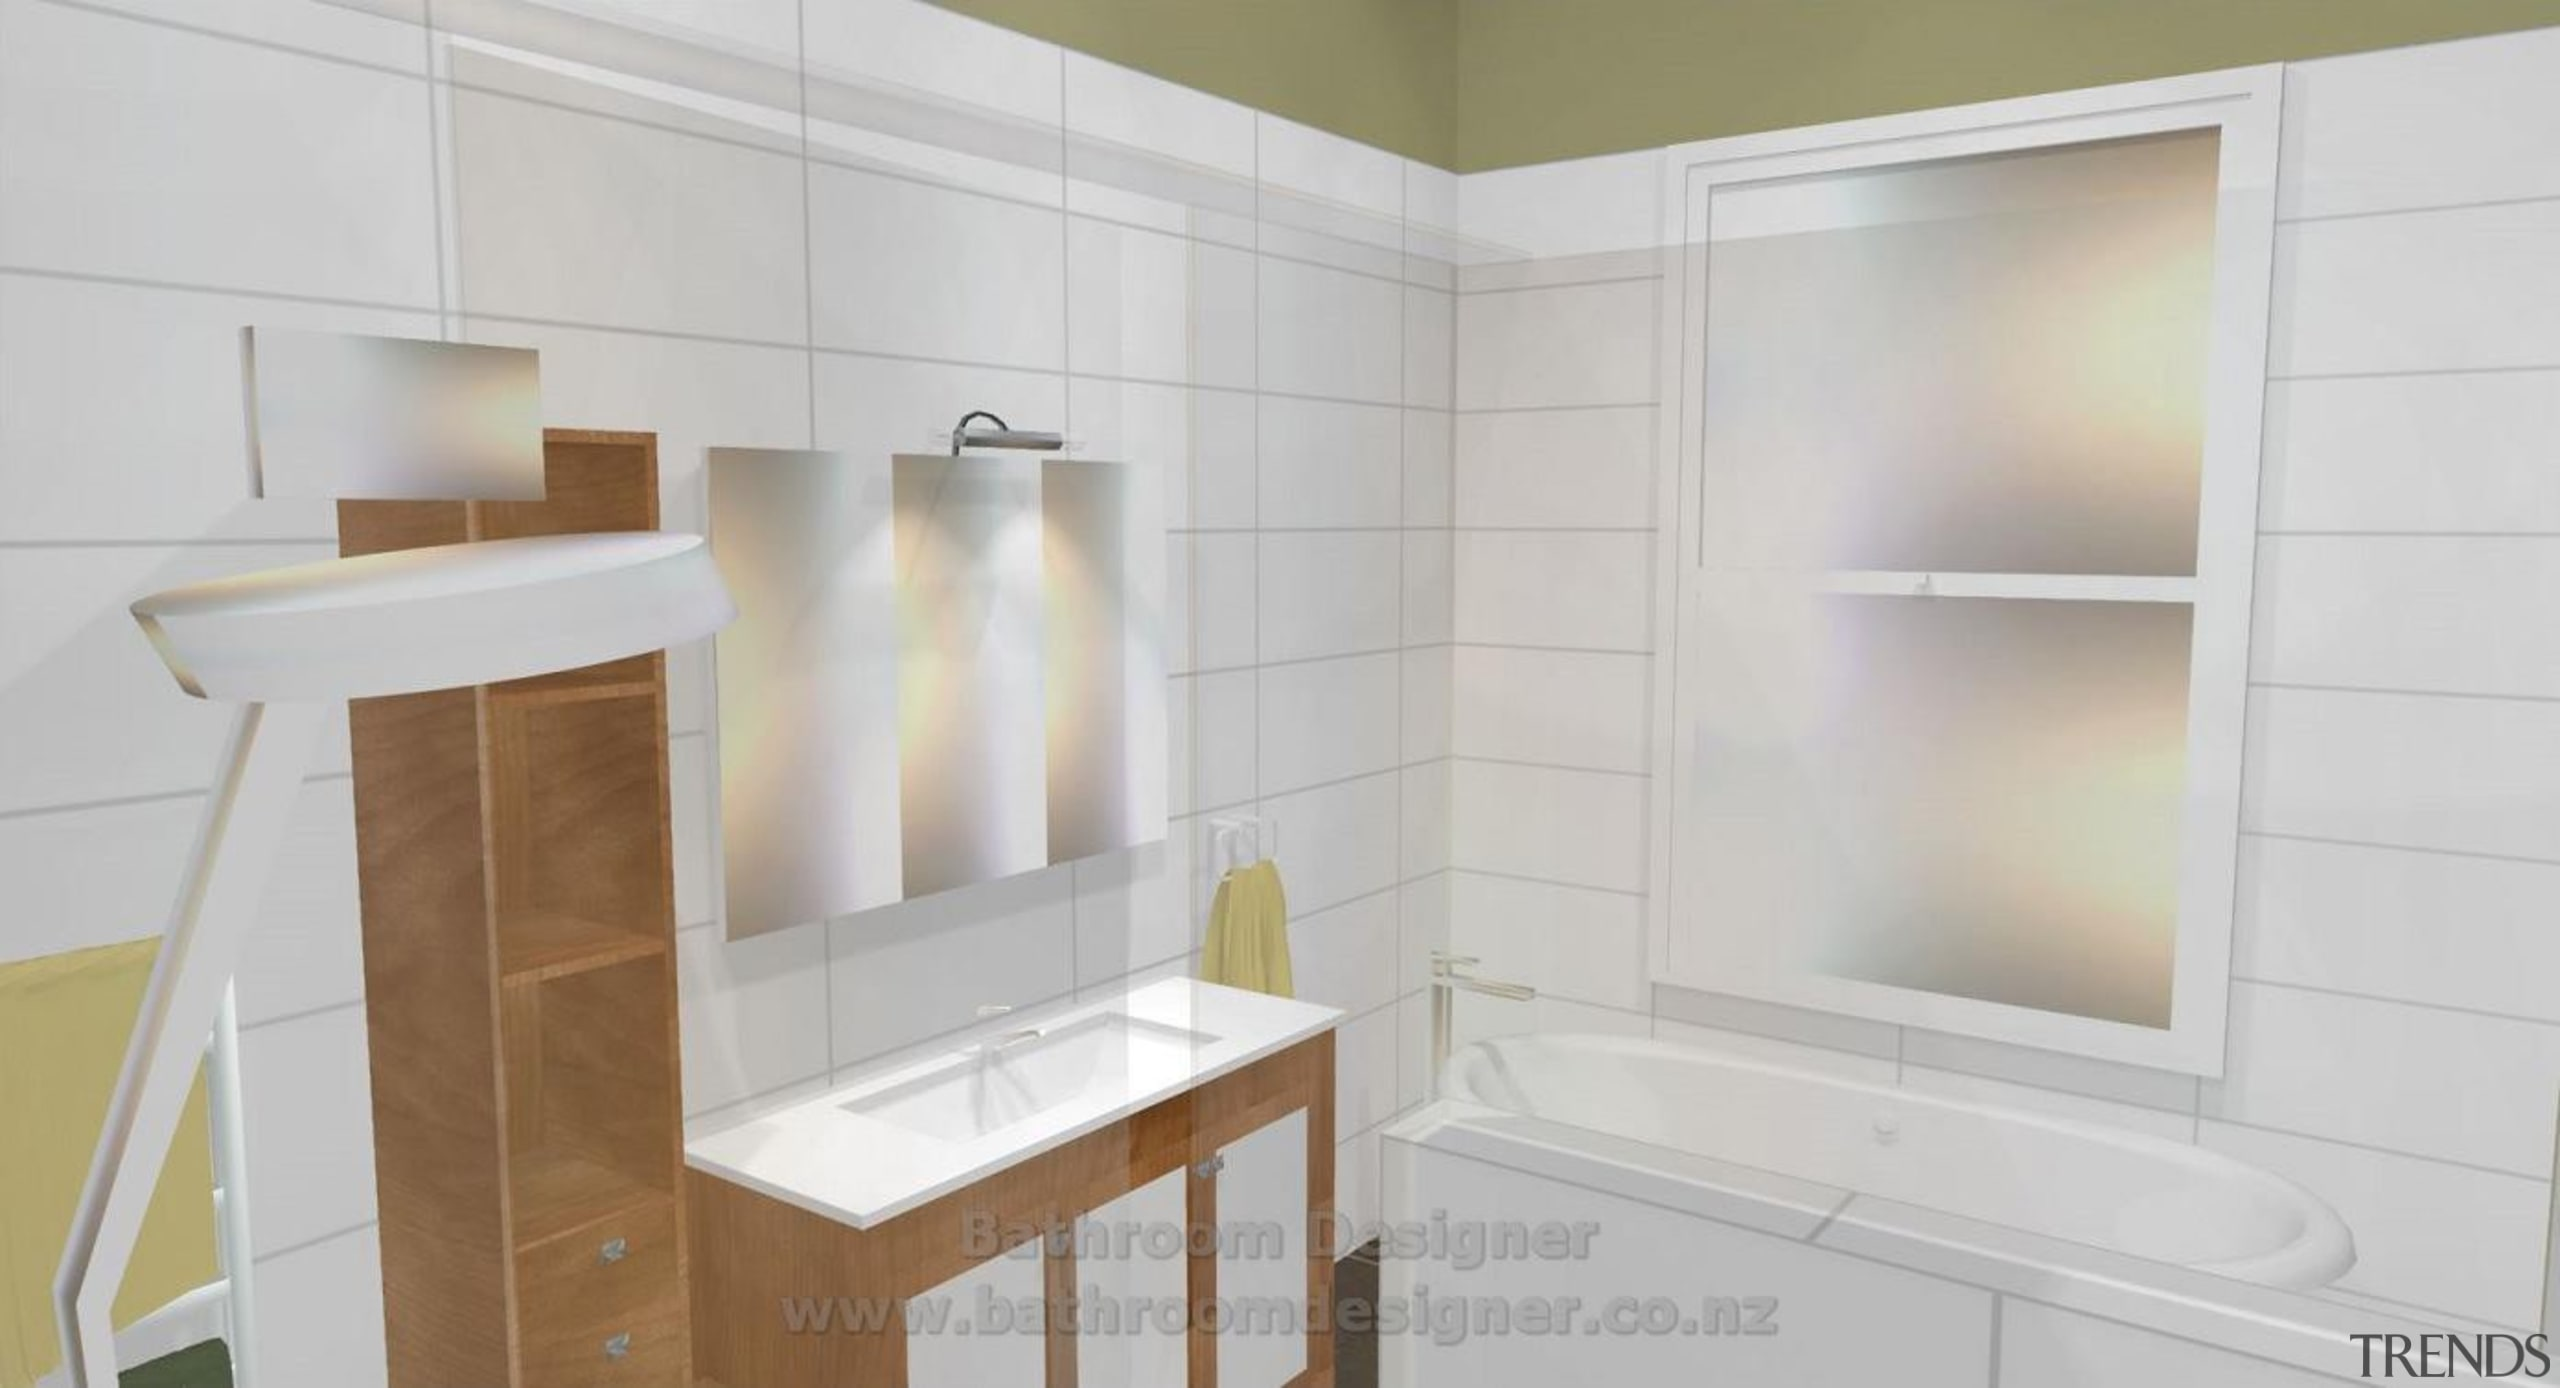 Modern Bathroom Designs from one of our bathroom bathroom, bathroom accessory, floor, flooring, interior design, room, tile, wall, gray